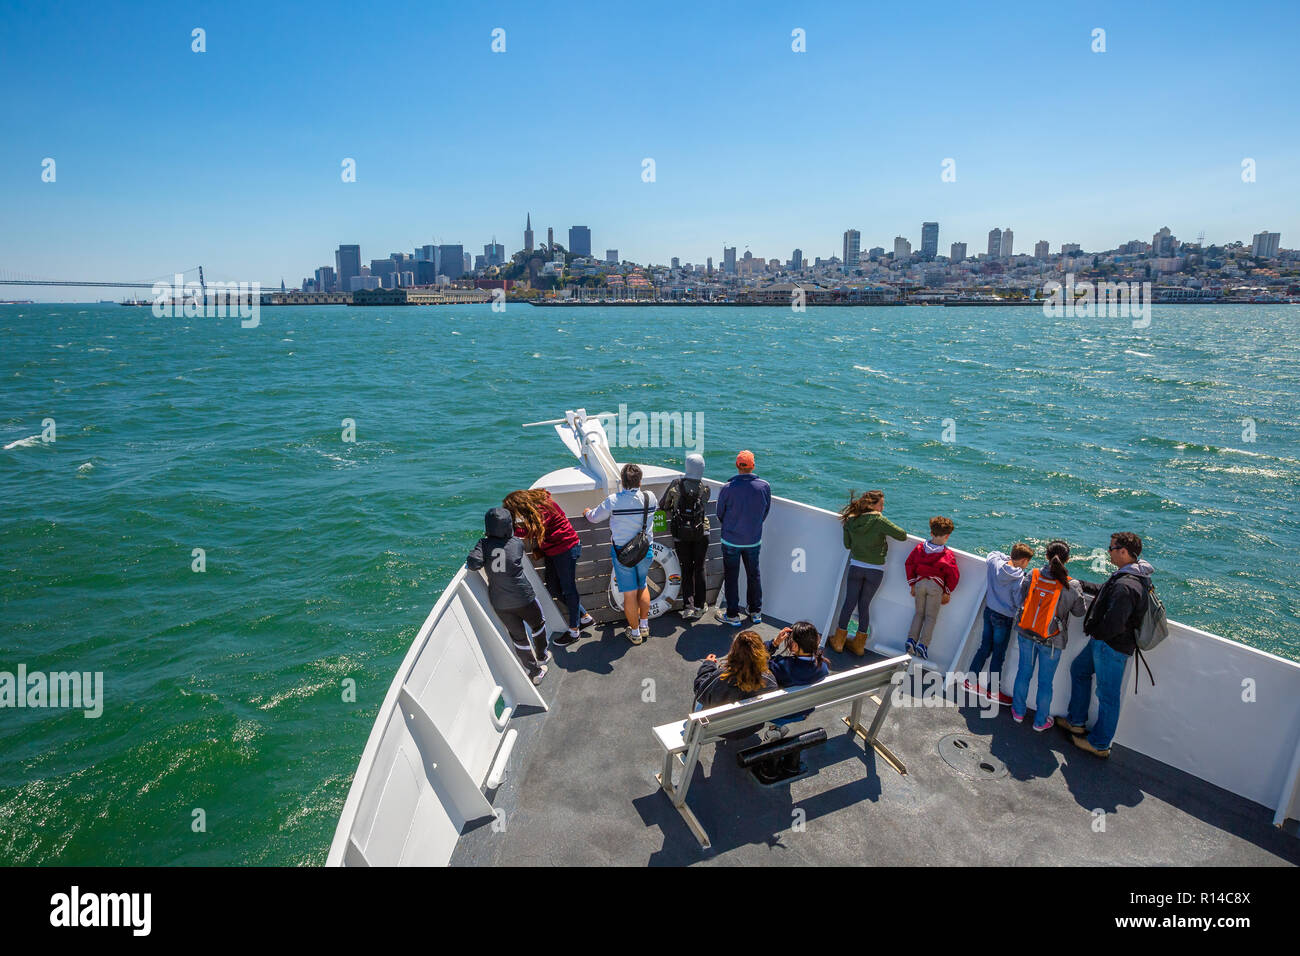 San Francisco, California, United States - August 14, 2016: Alcatraz Flayer boat cruise prow with tourists to Francisco cityscape. Alcatraz Island remains one of San Francisco's most popular cruises. - Stock Image